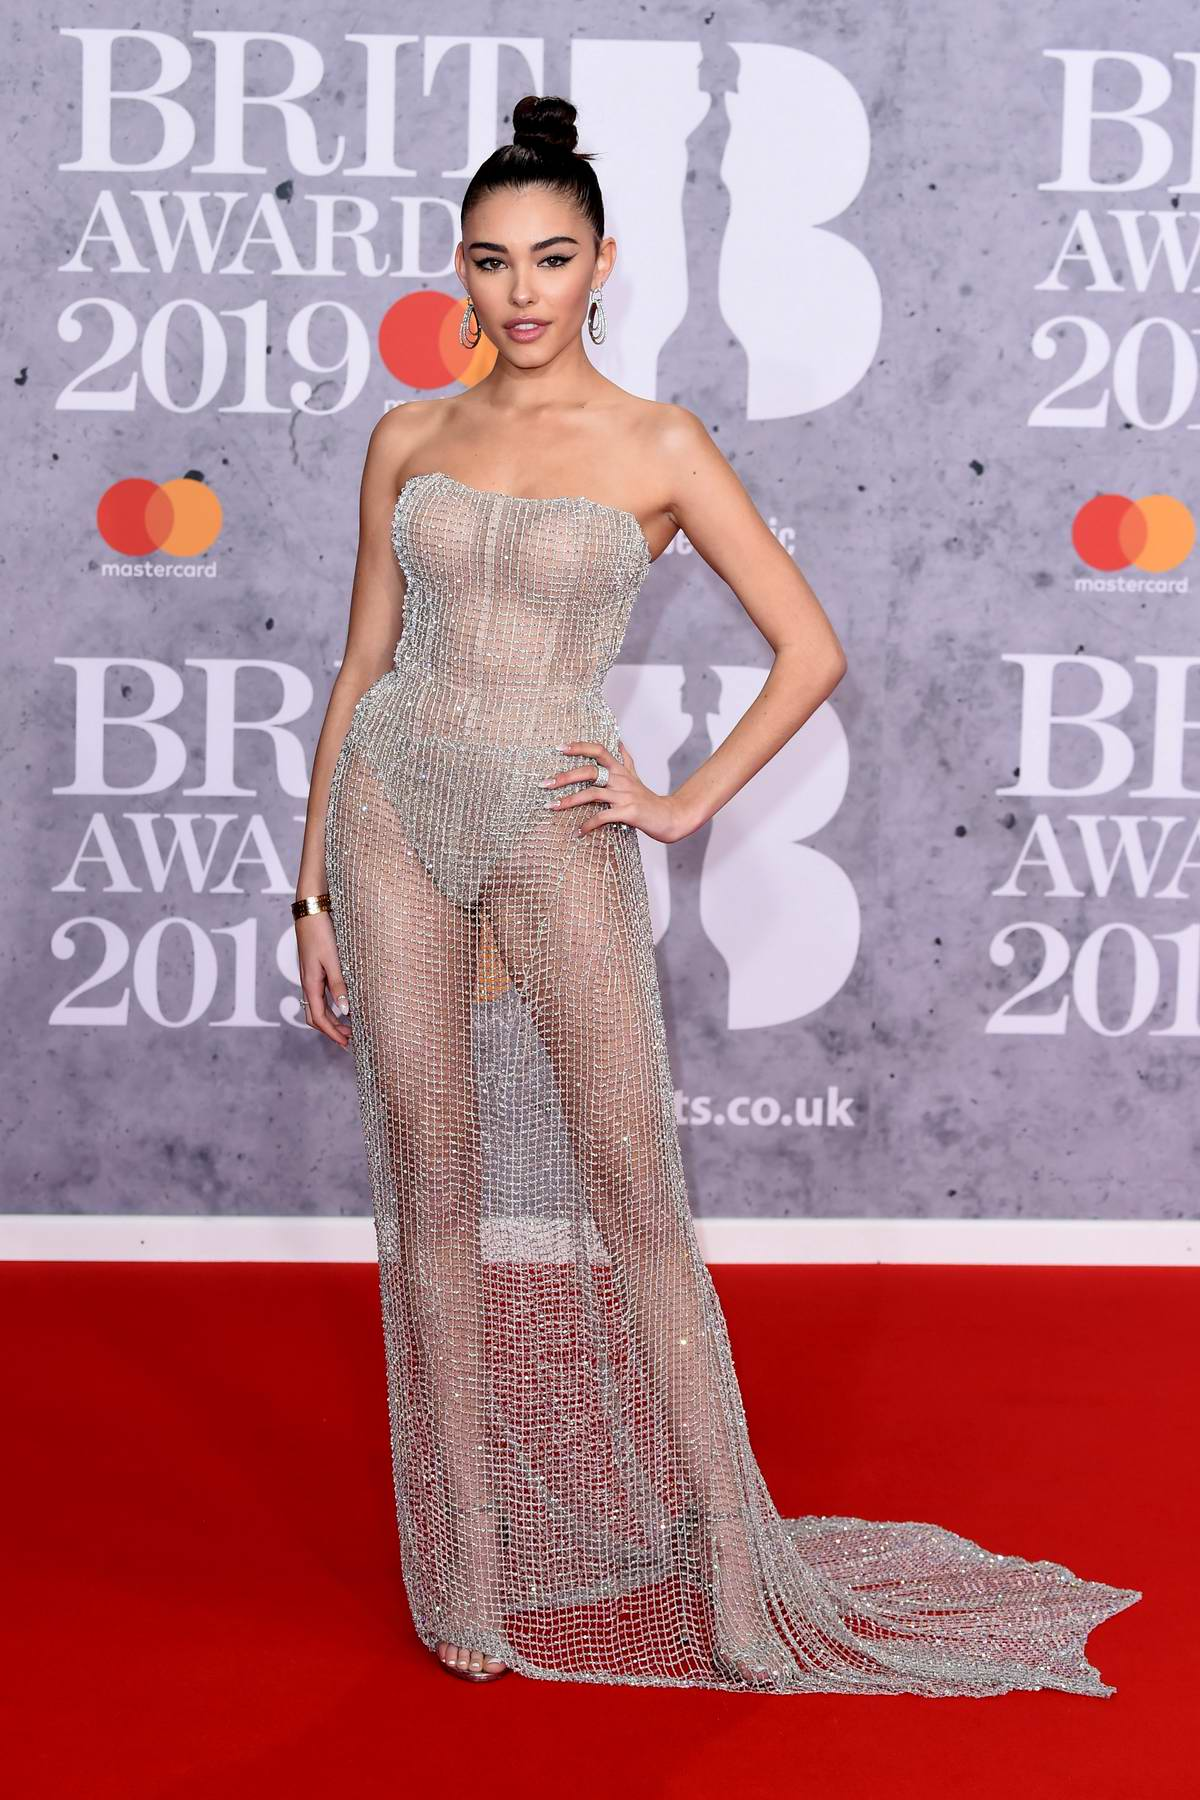 Madison Beer attends The BRIT Awards 2019 held at The O2 Arena in London, UK